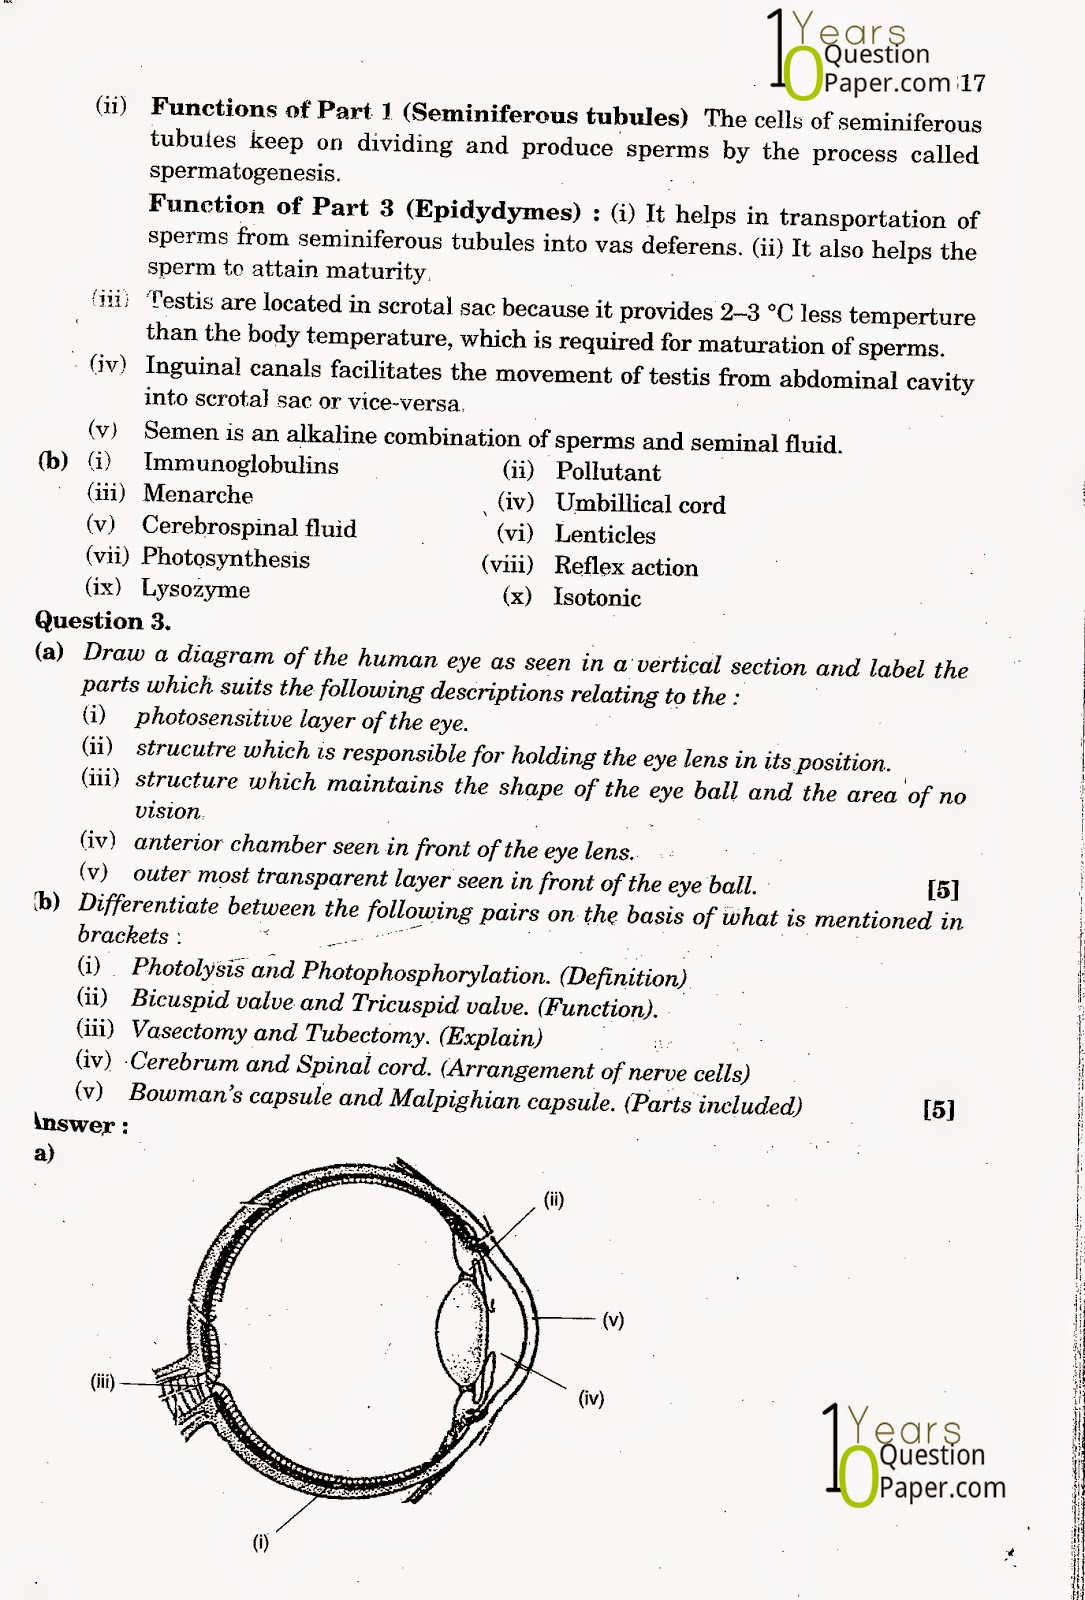 icse class 10th Biology solved question paper 2013